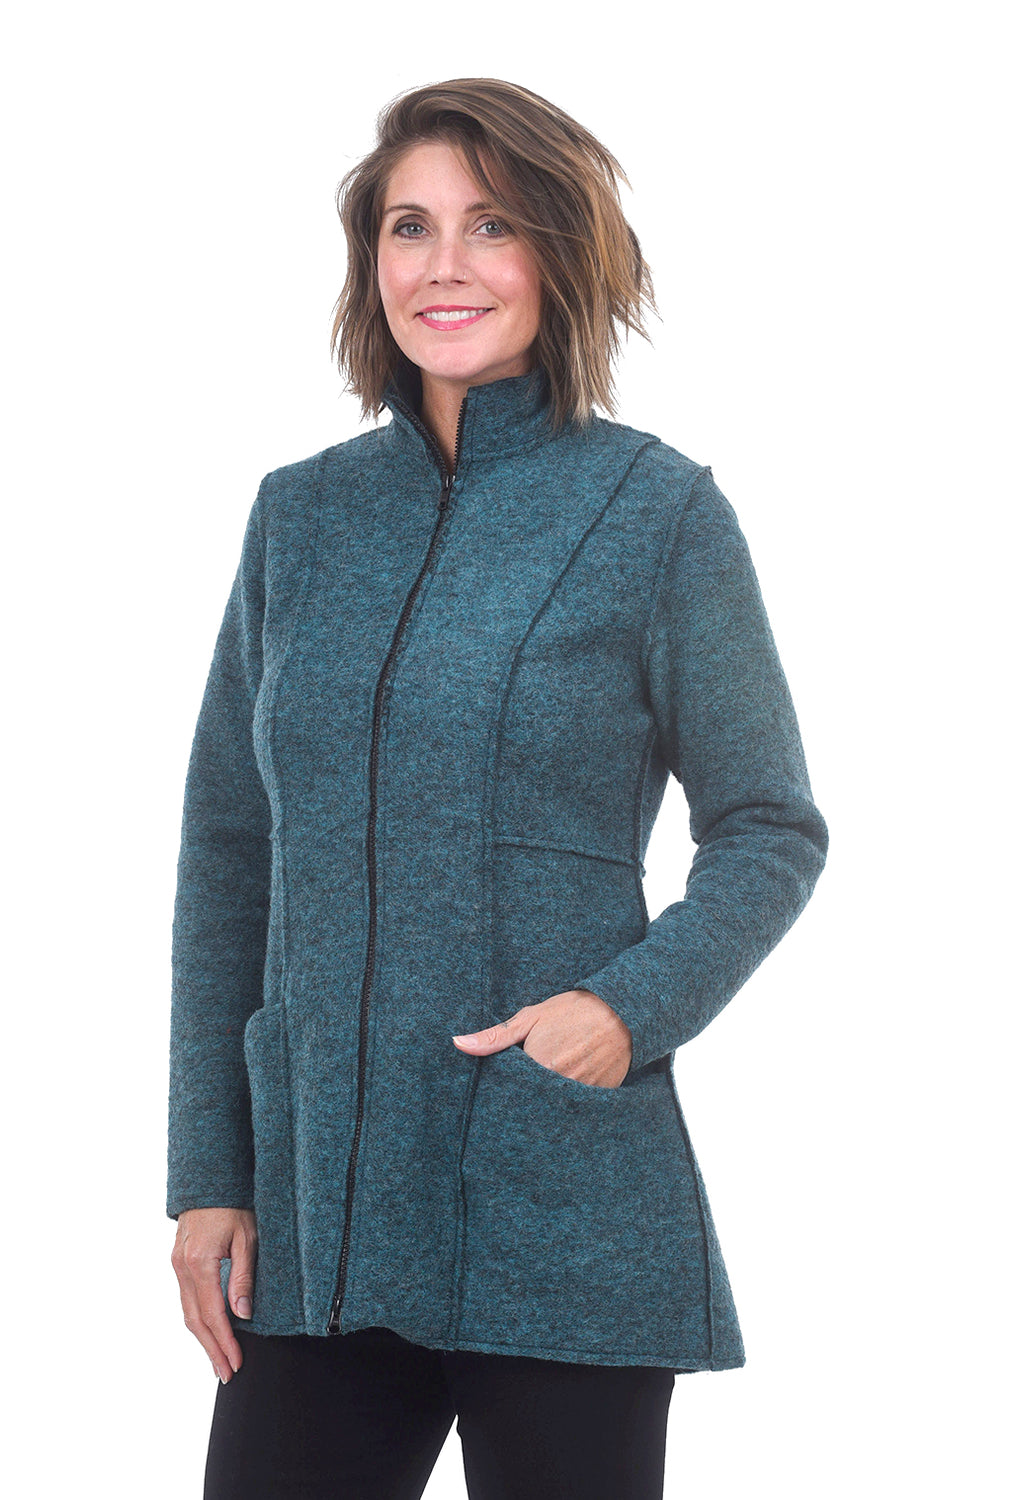 Cut Loose Boiled Wool Zip Jacket, Gulfstream Teal